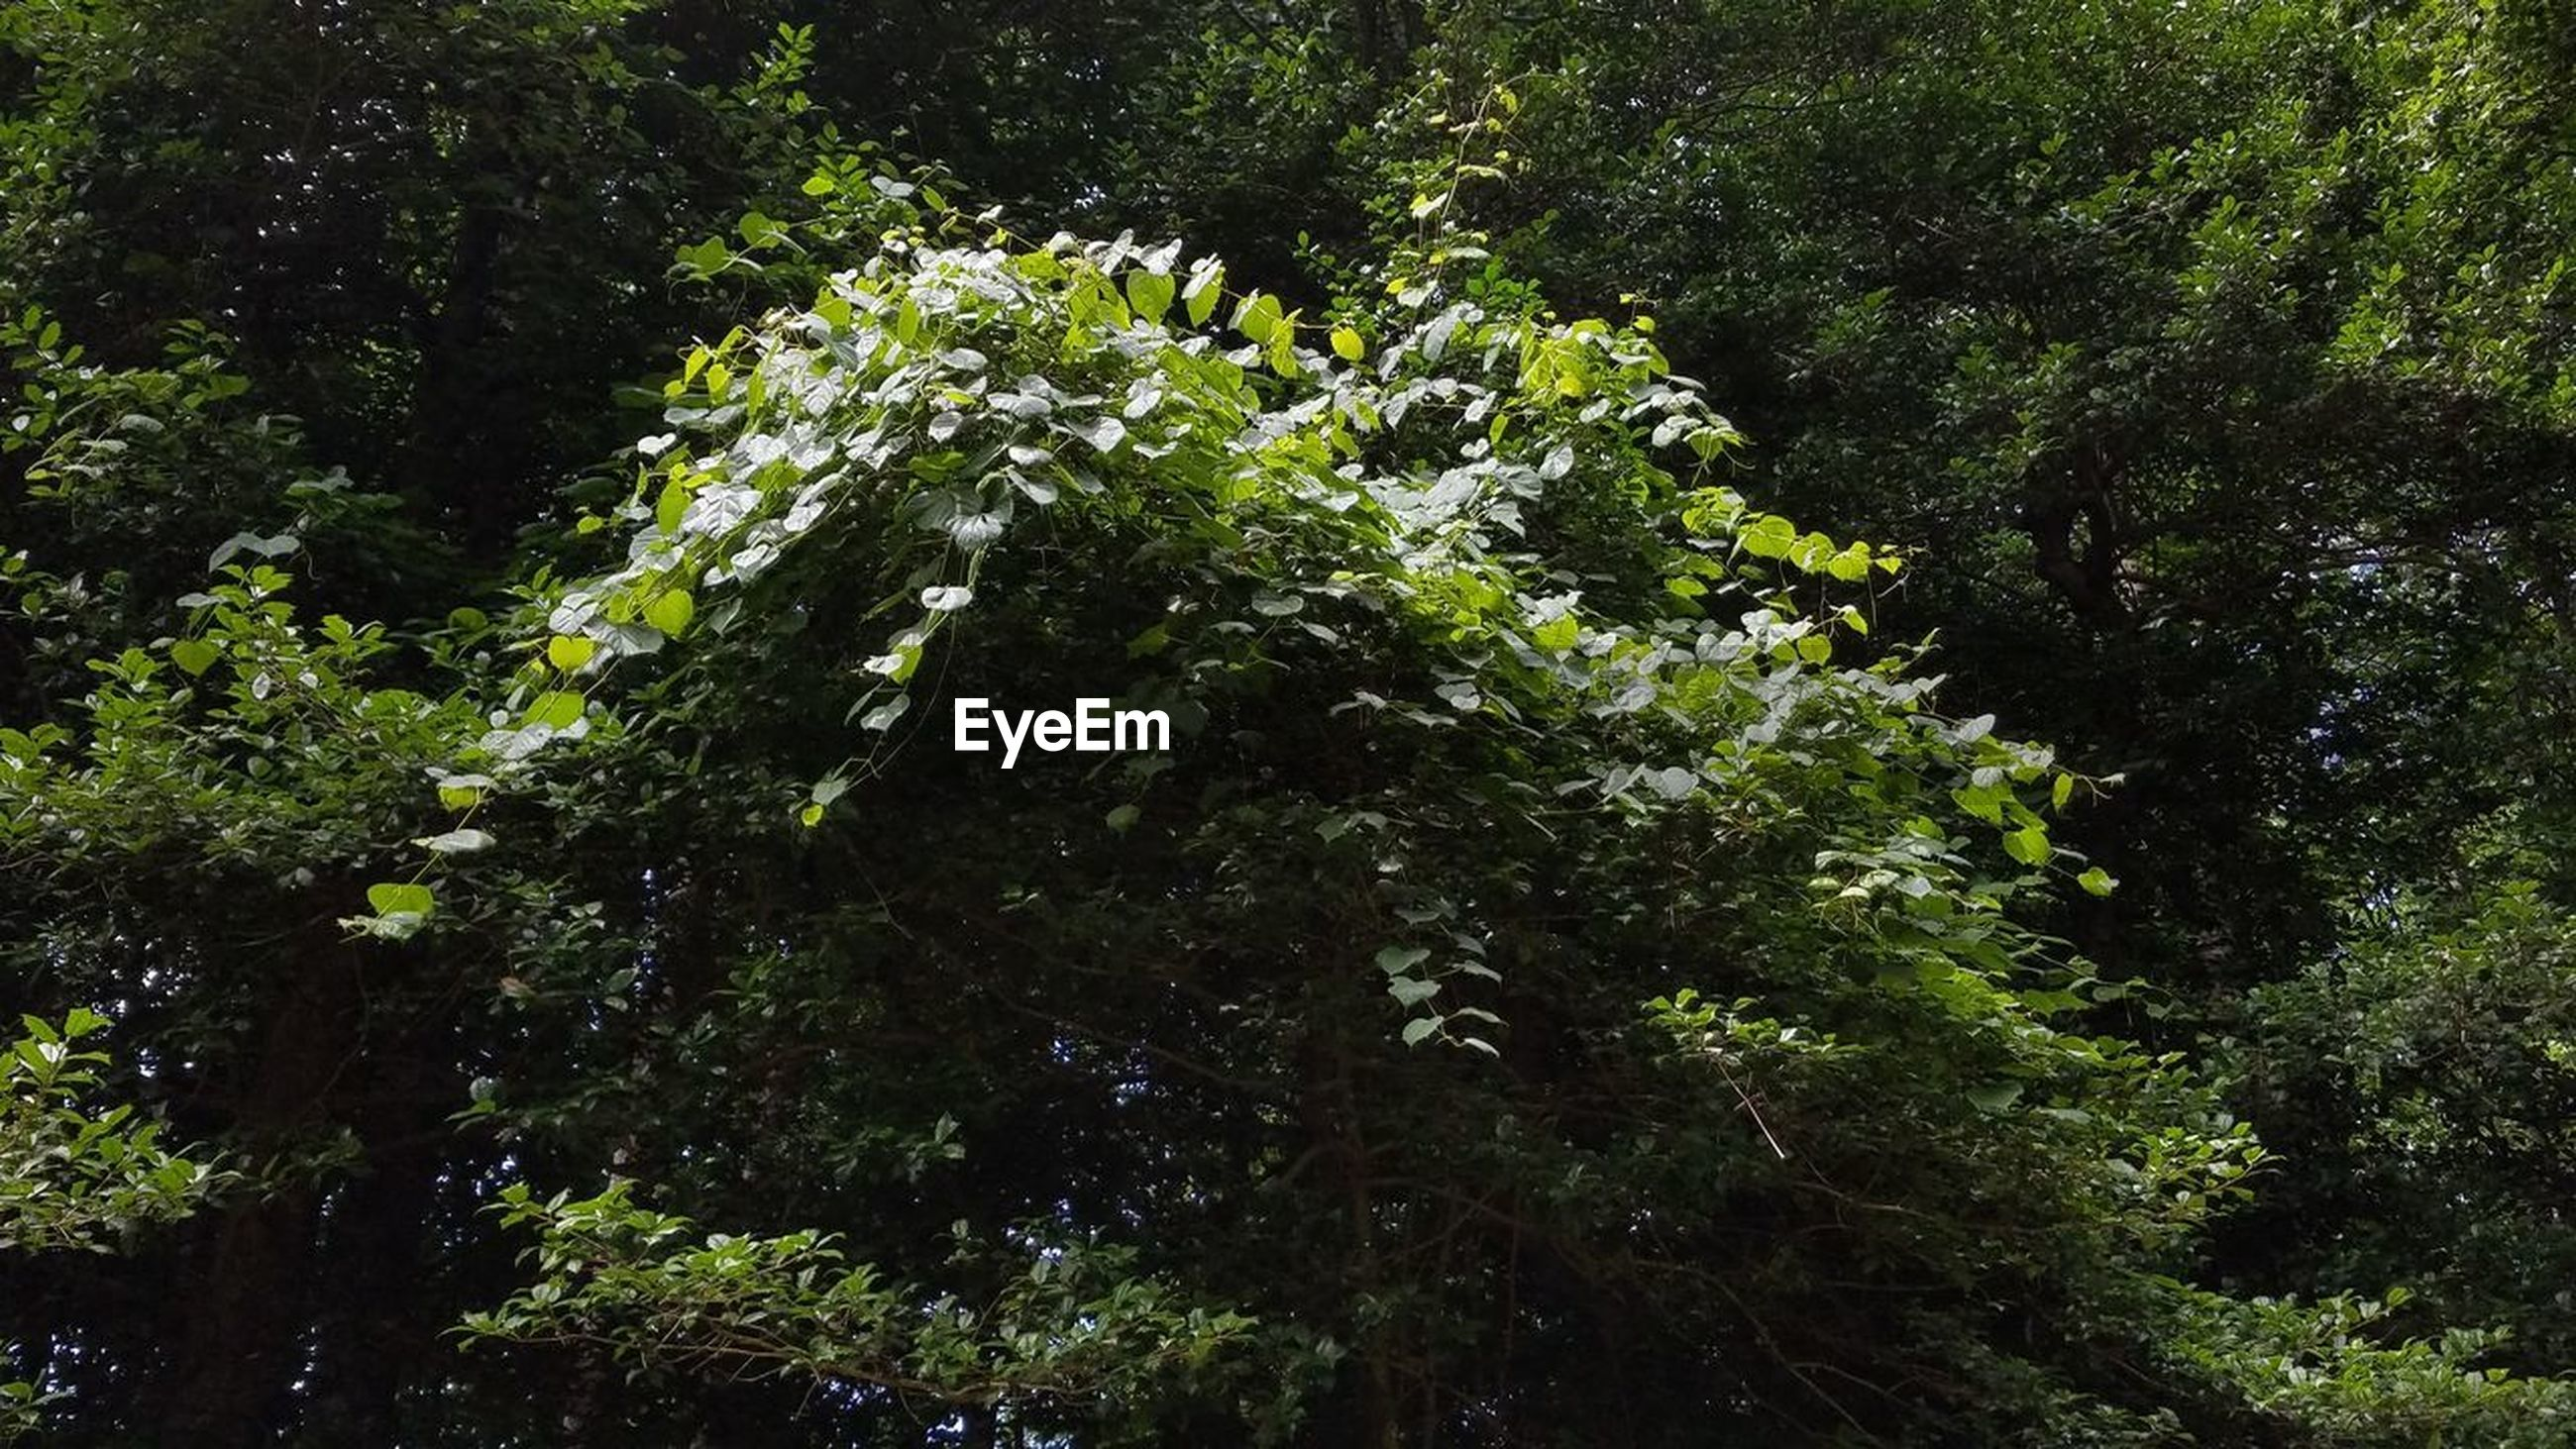 plant, tree, green, forest, growth, nature, natural environment, woodland, vegetation, rainforest, leaf, sunlight, beauty in nature, flower, no people, jungle, day, tranquility, foliage, lush foliage, branch, outdoors, low angle view, land, old-growth forest, garden